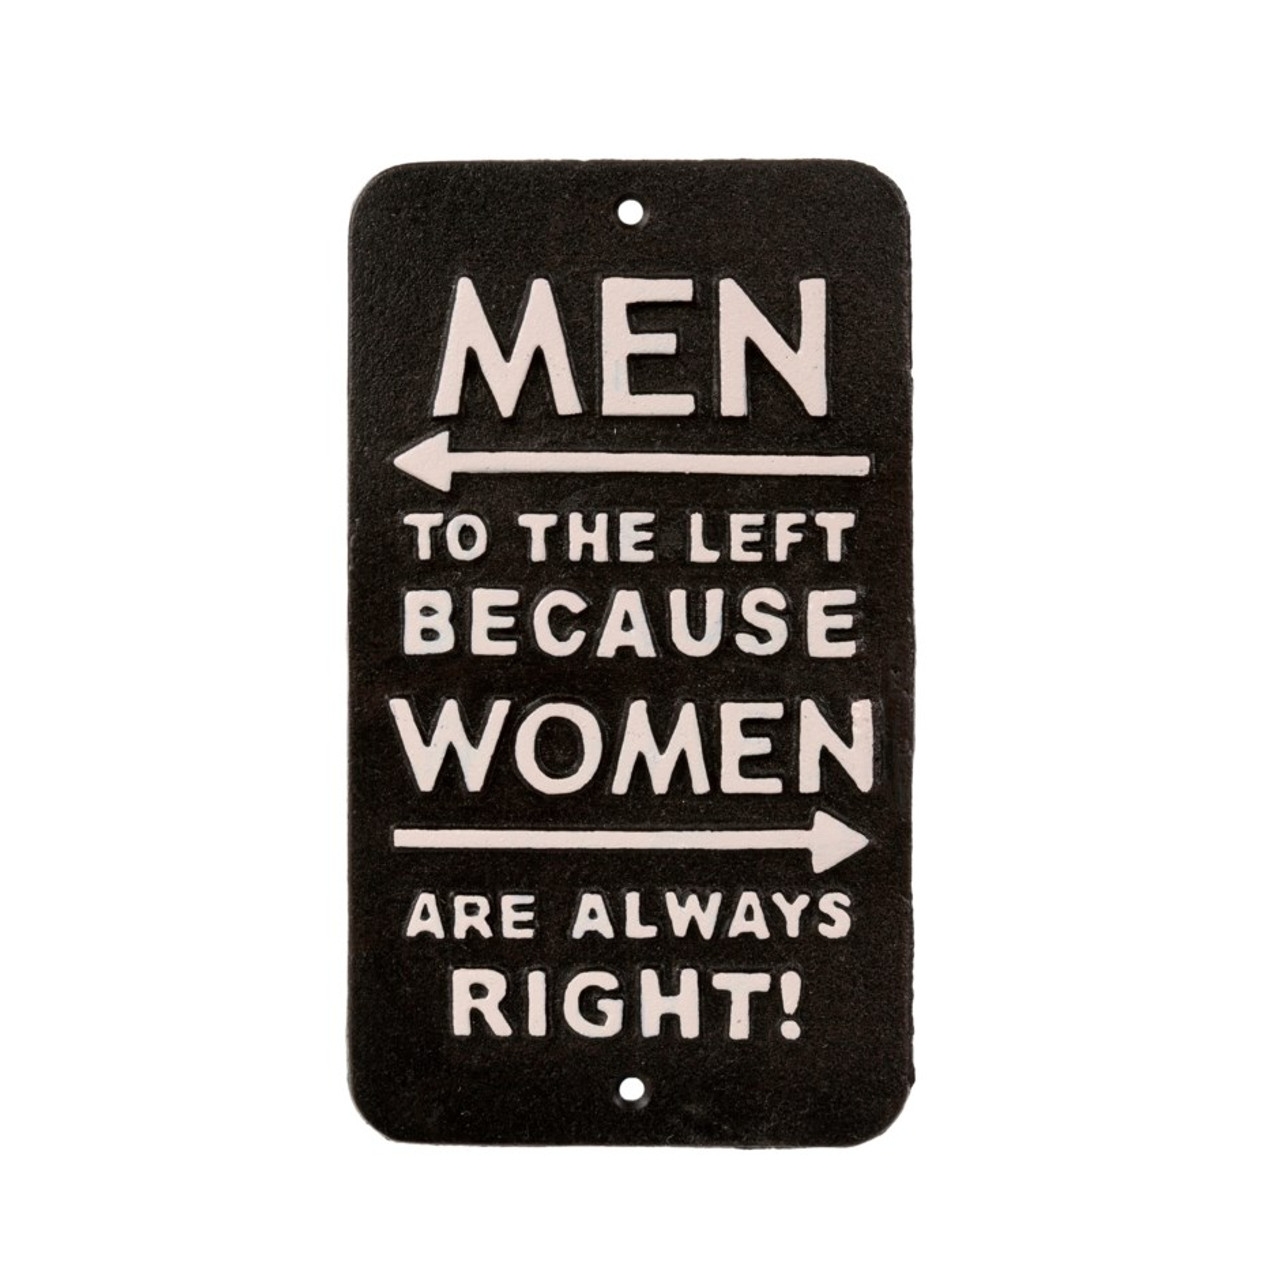 SIGN - WOMEN ARE ALWAYS RIGHT